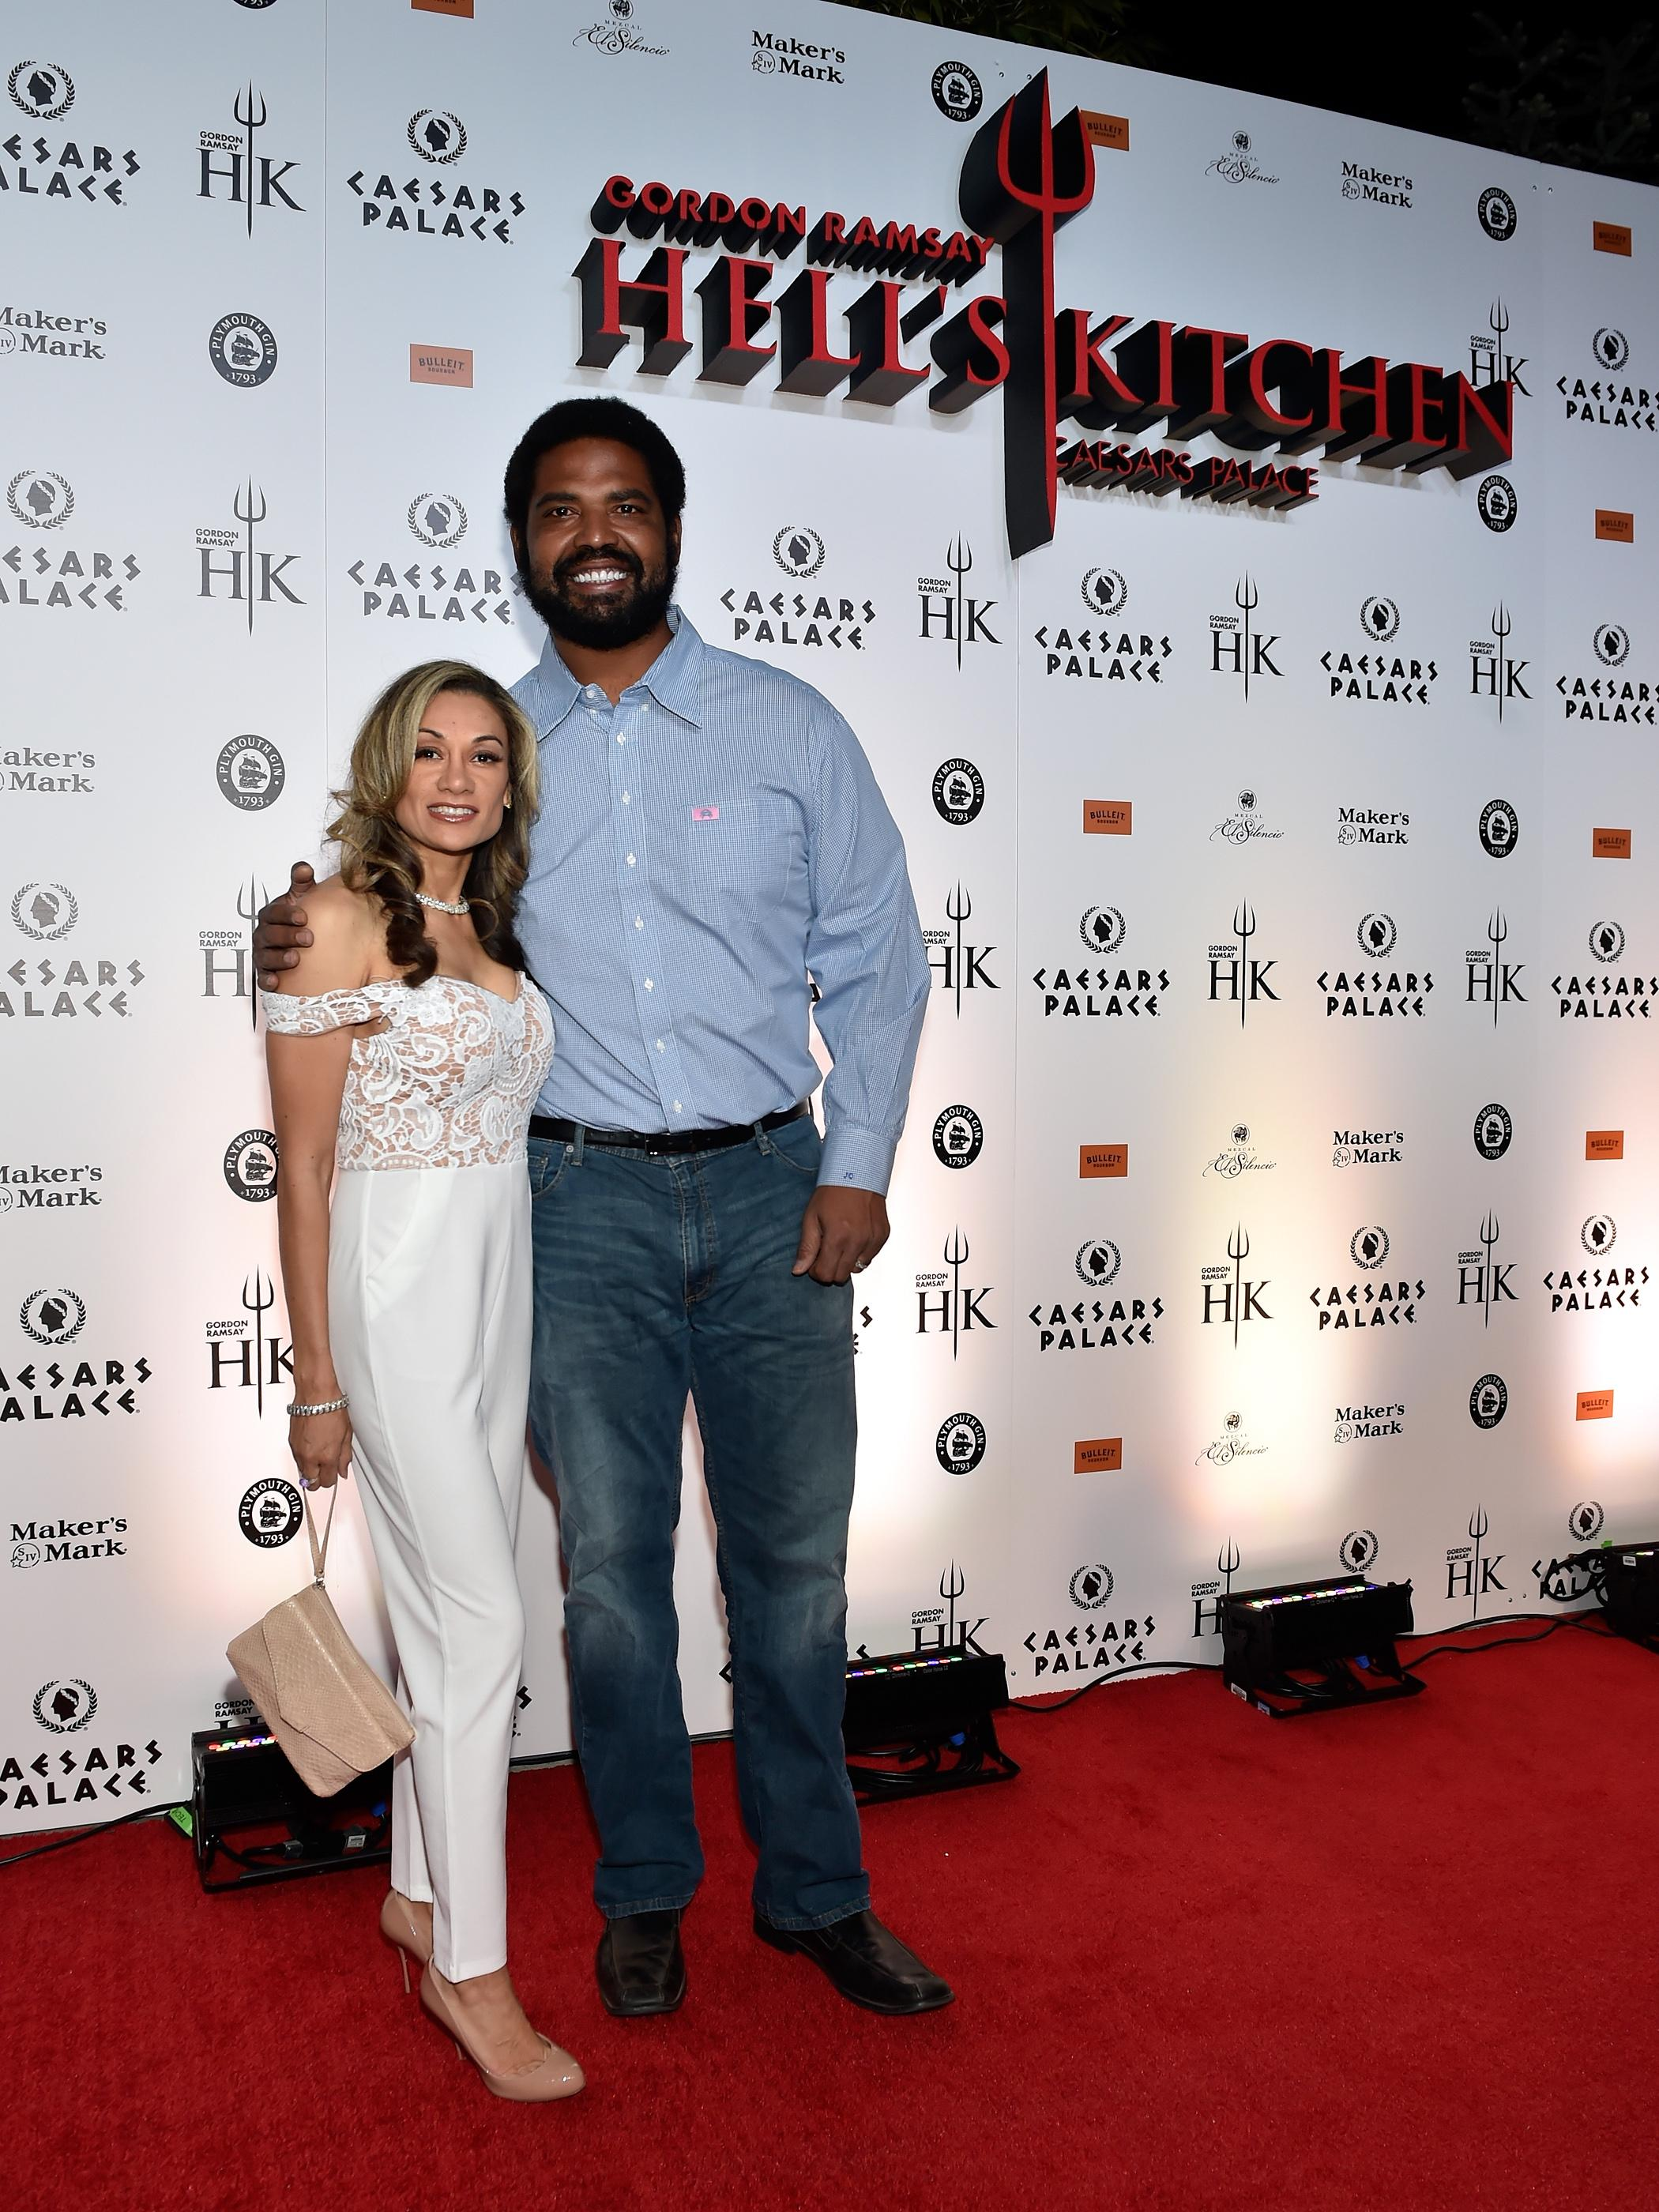 NFL Hall of Famer Jonathan Ogden, right and his wife Kema Francis pose on the red carpet at the grand opening of Gordon Ramsay Hell's Kitchen at Caesars Palace Friday, Jan. 26, 2018, in Las Vegas. CREDIT: David Becker/Las Vegas News Bureau